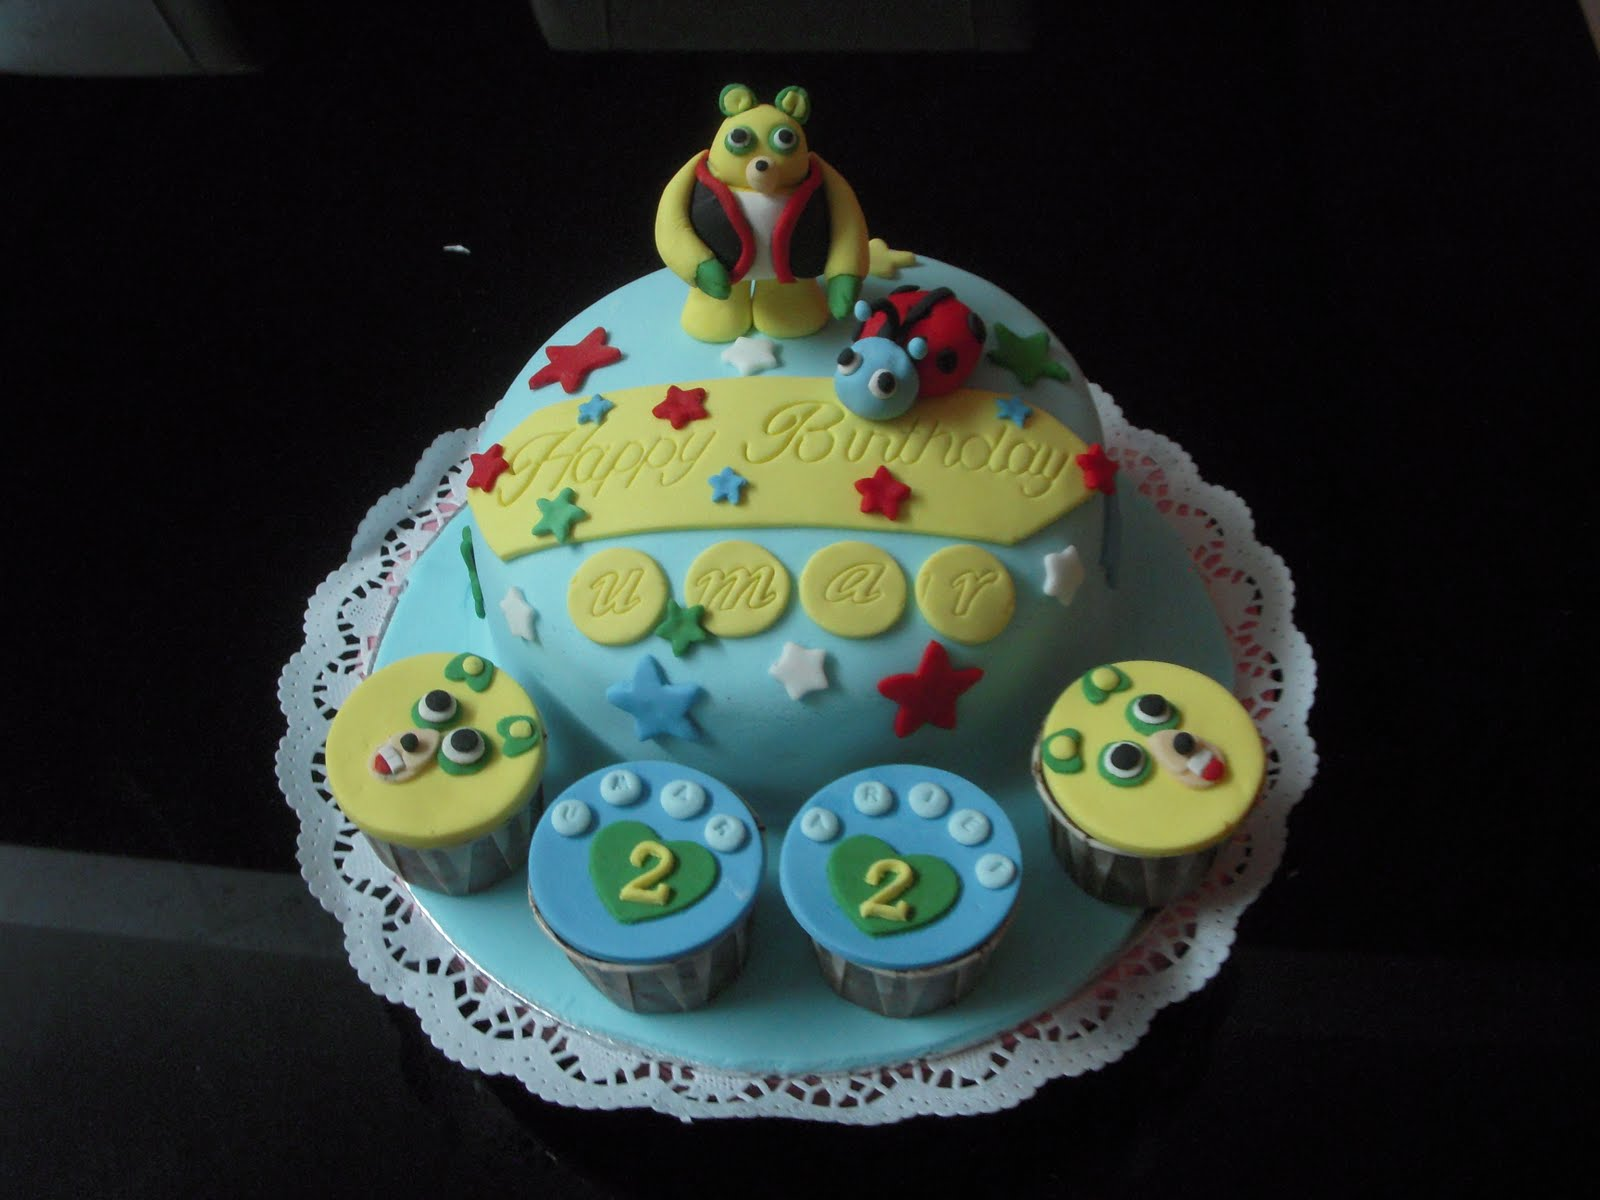 Special+agent+oso+birthday+cake